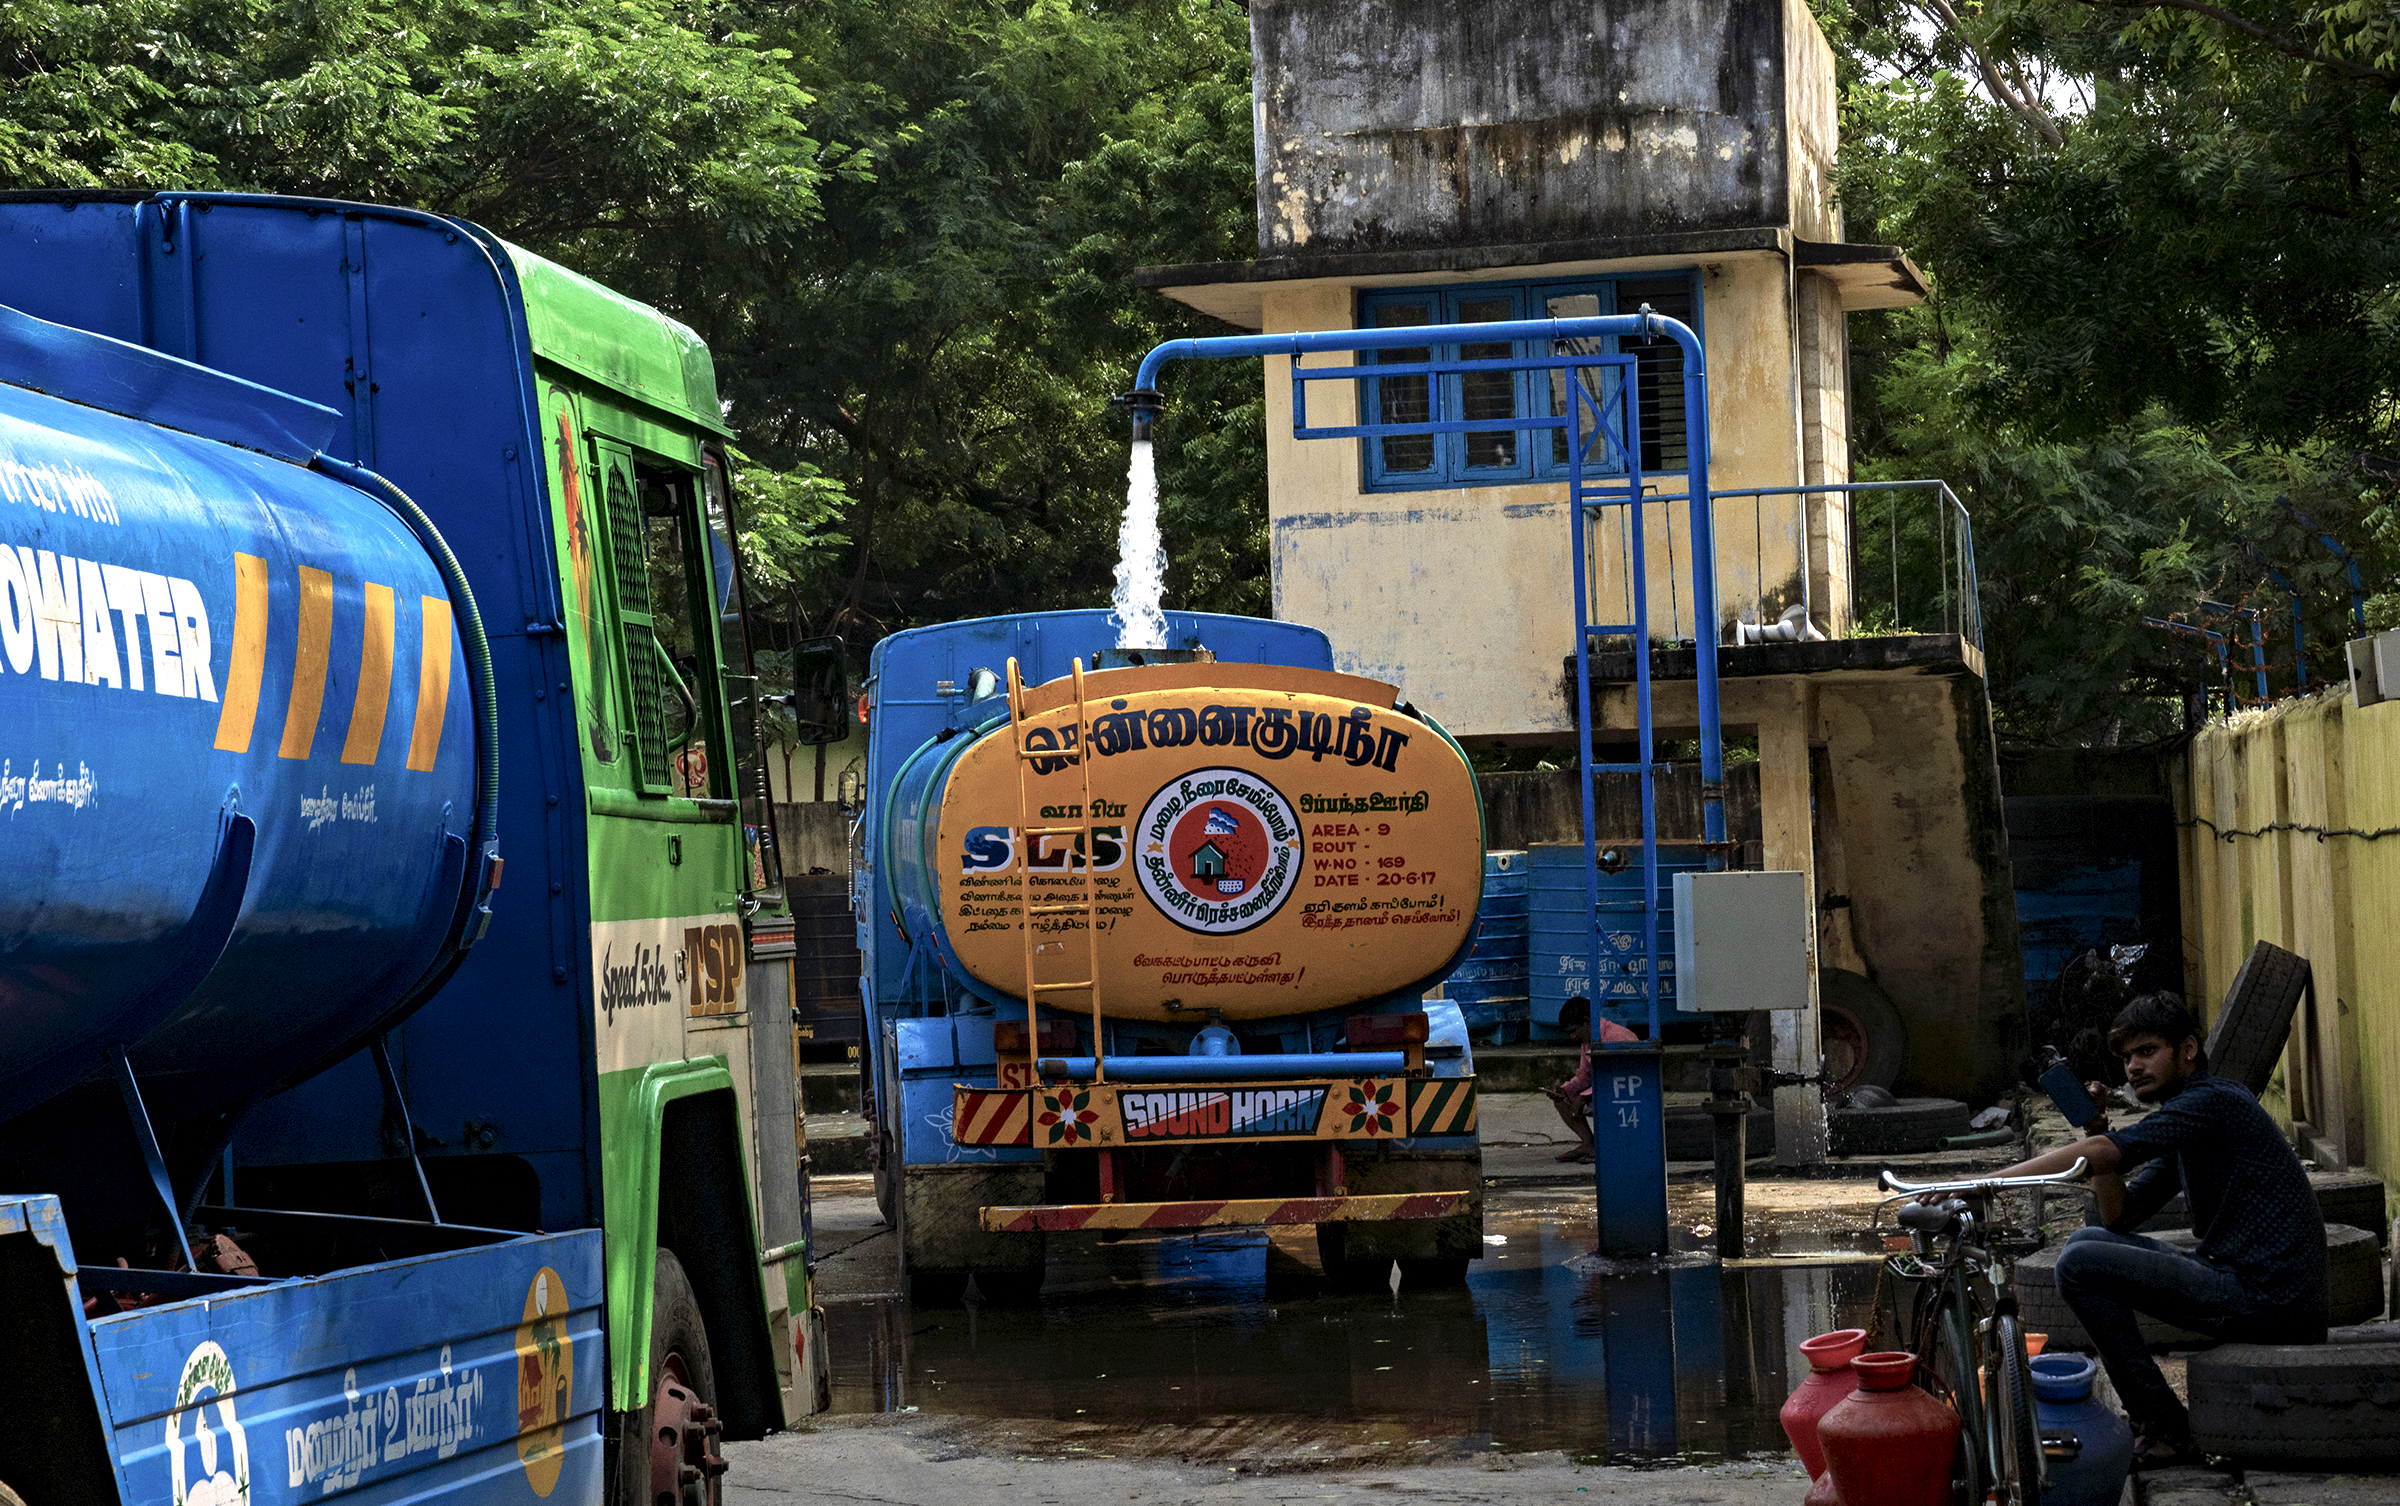 Water trucks supply drinking water throughout Chennai during the summer months. Unfortunately, the water they provide comes from underground aquifers, which are connected to wetland ecosystems, tanks, lakes, and rivers throughout the region.